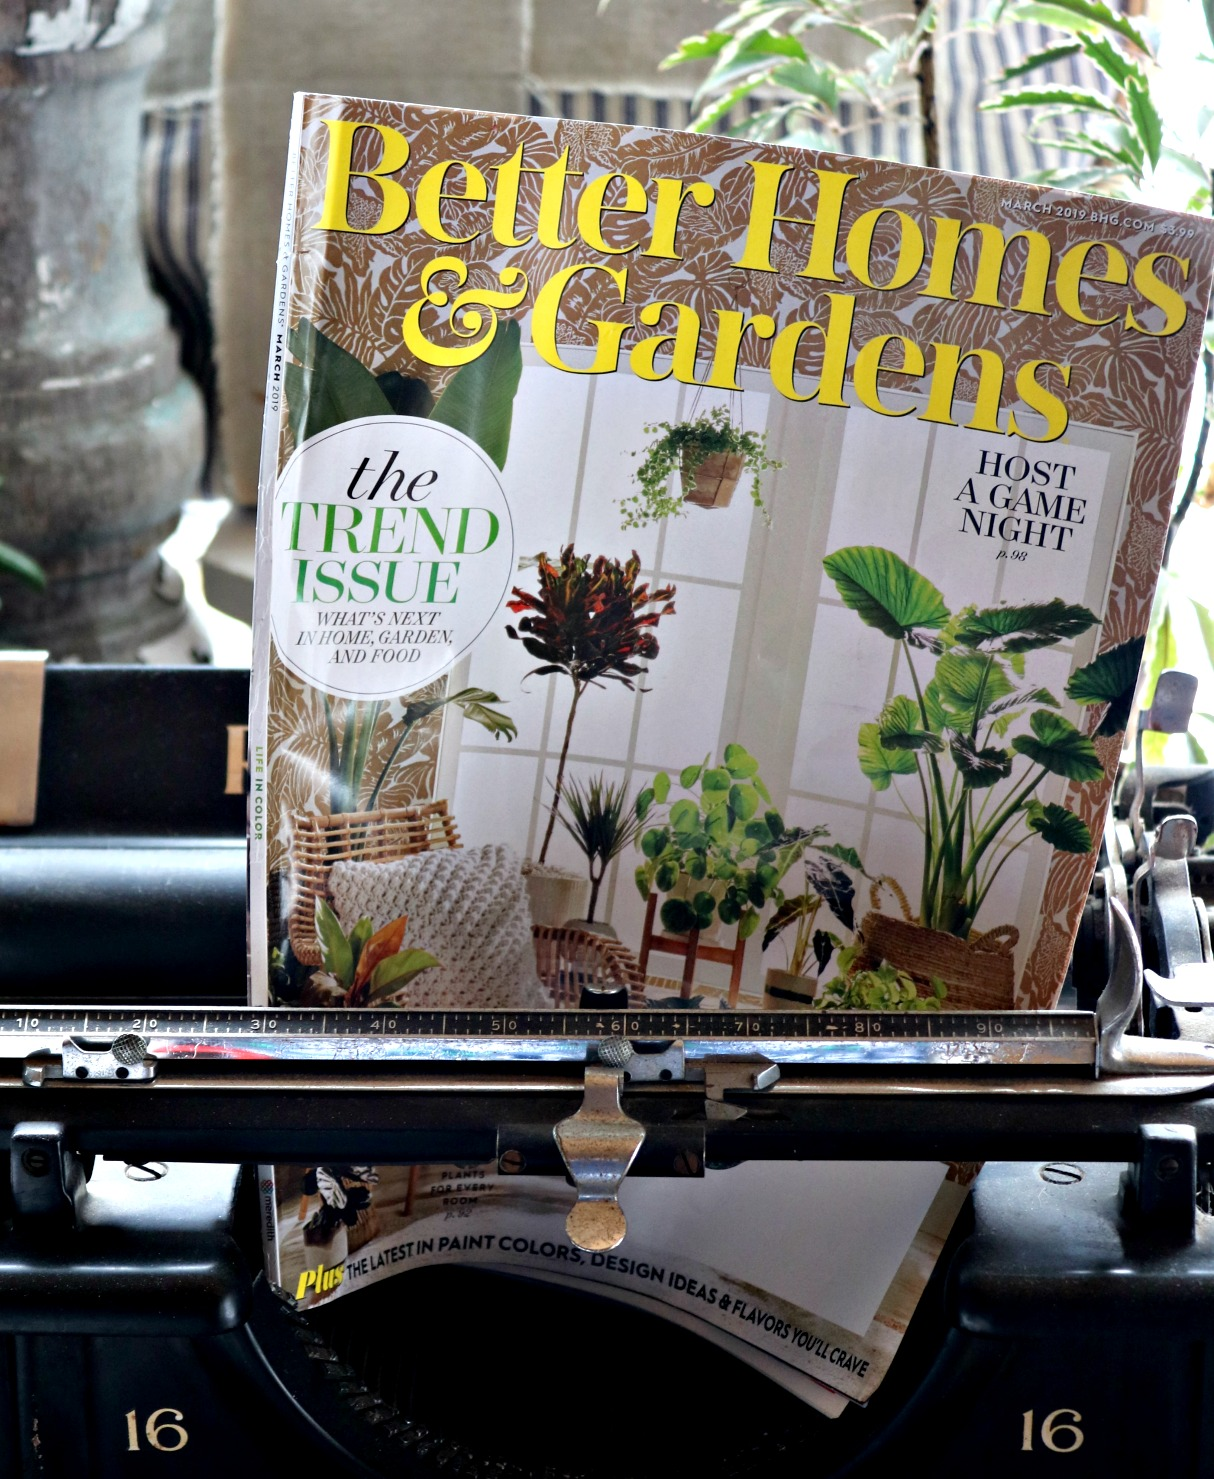 To Trend or Not To Trend? What's trending and how you can vote on the trends at Better Homes & Gardens magazines for their March Madness